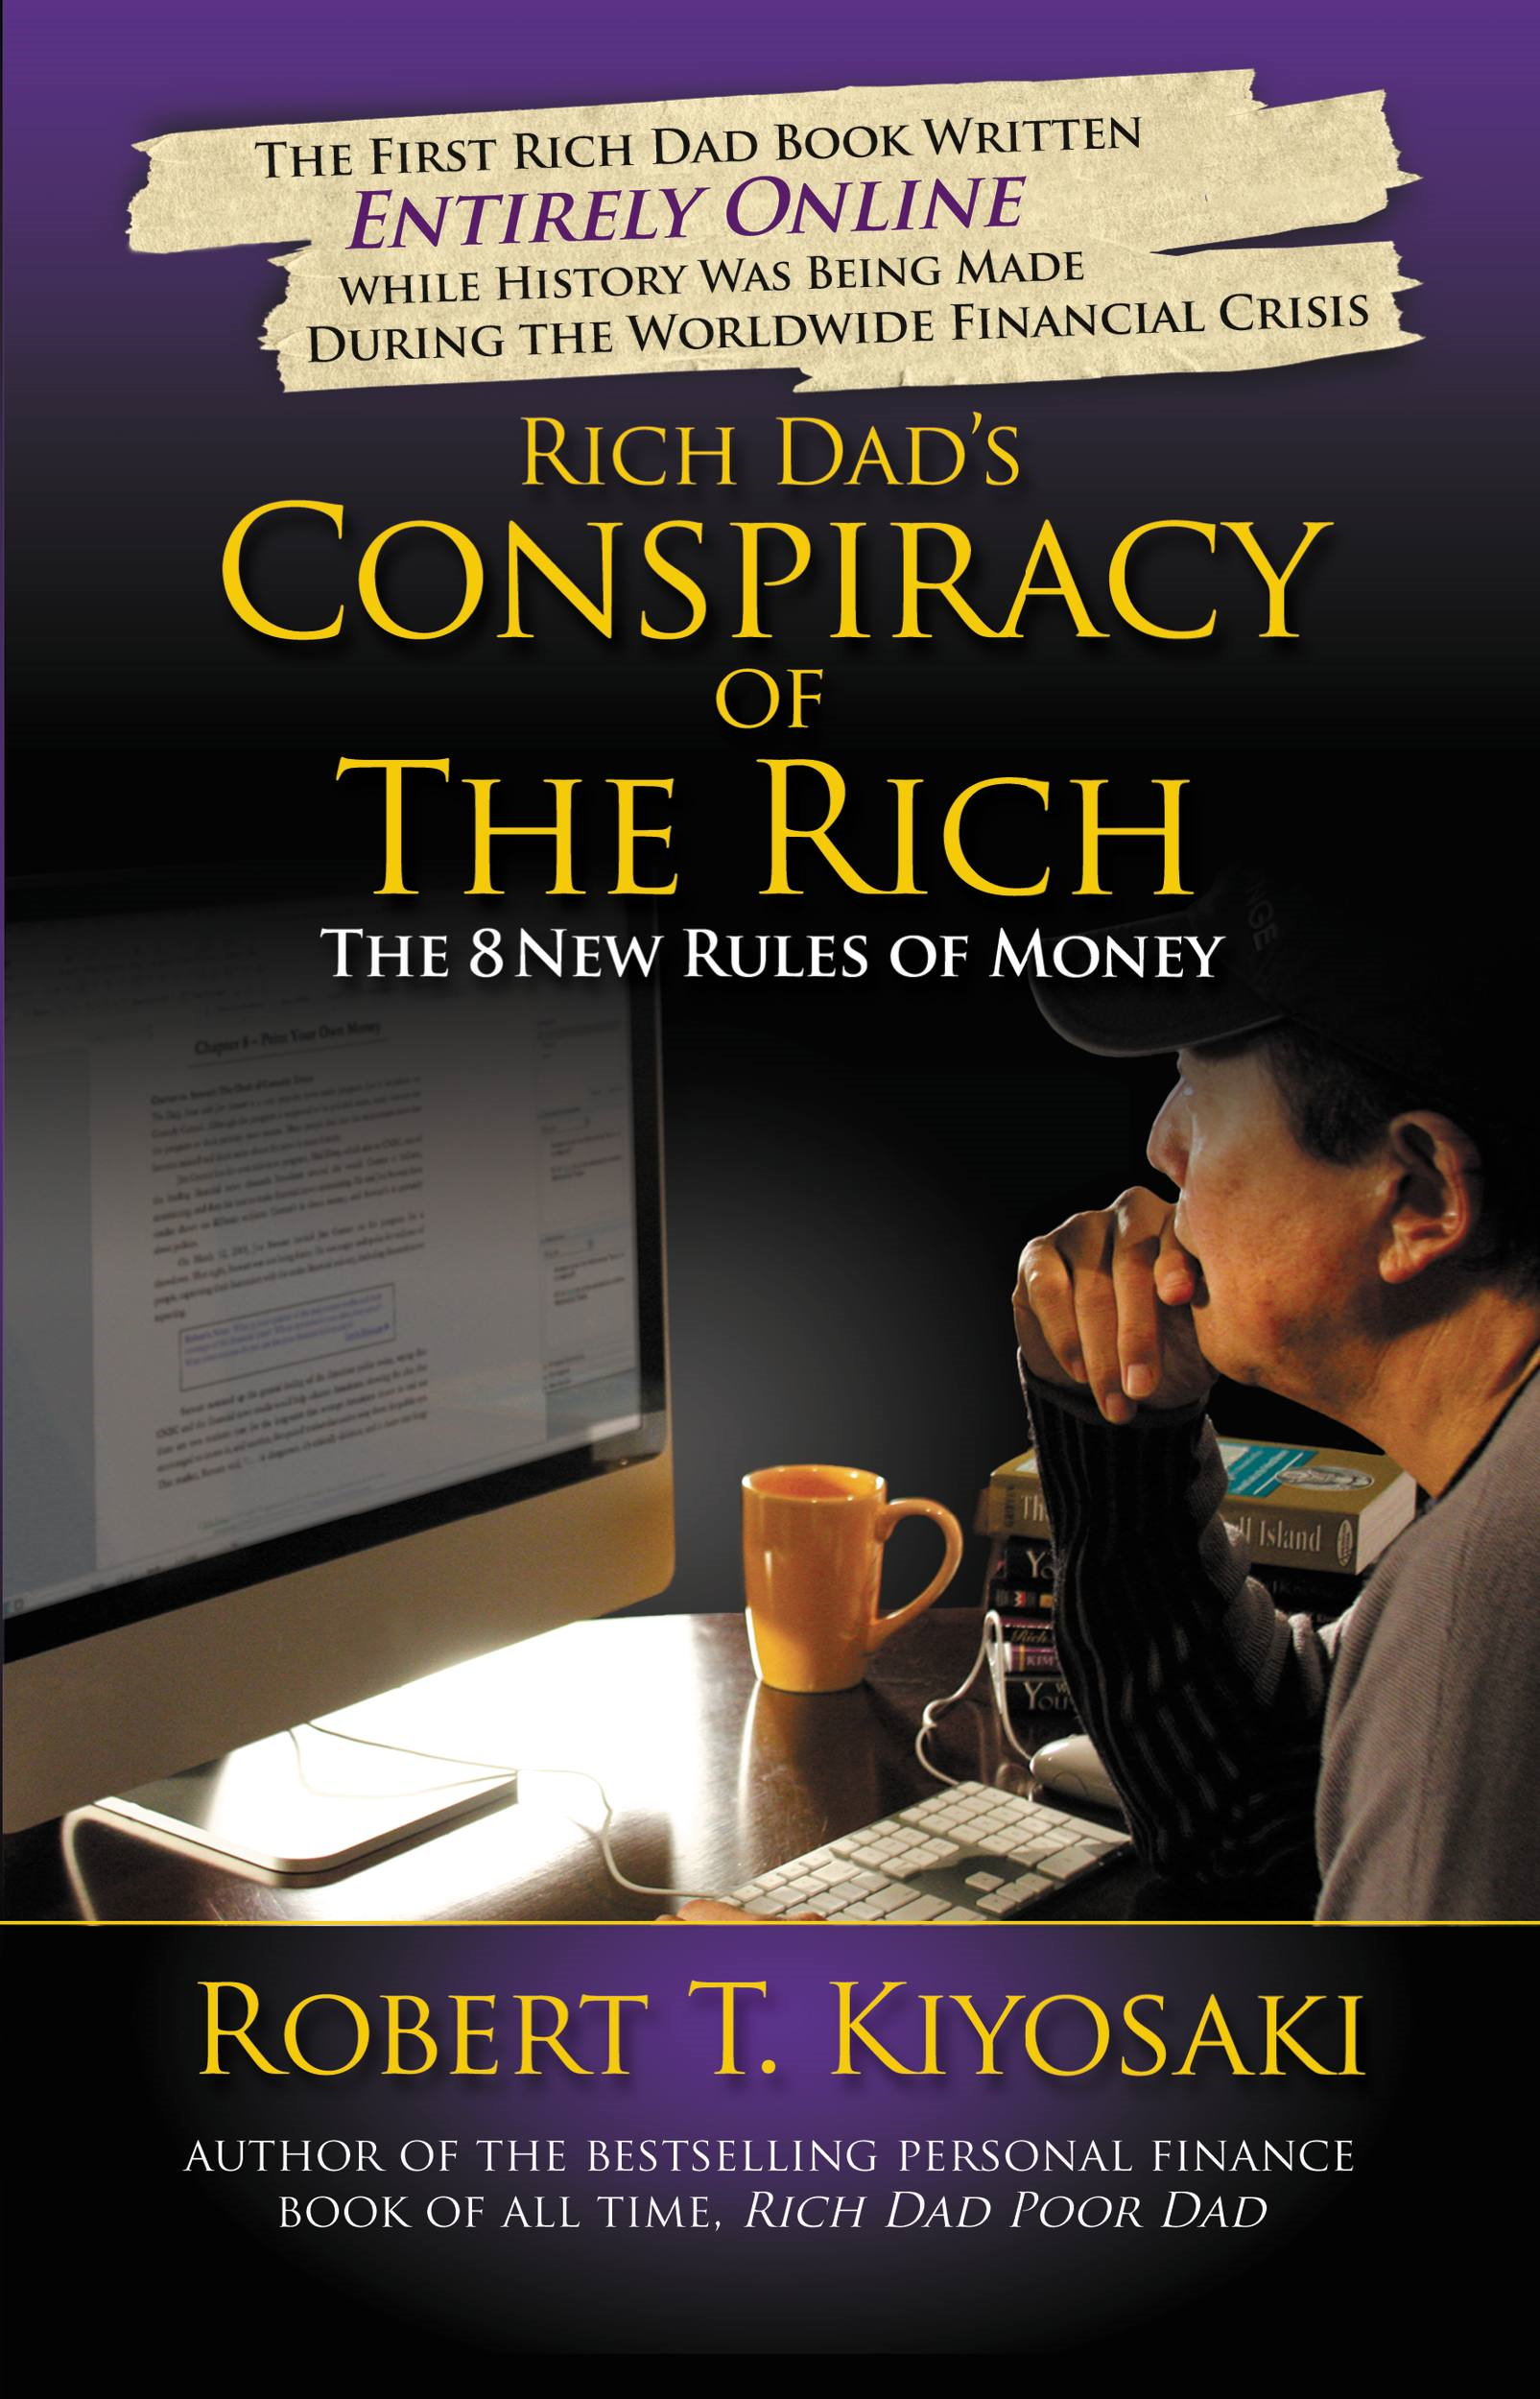 Rich Dad's Conspiracy of the Rich By: Robert T. Kiyosaki